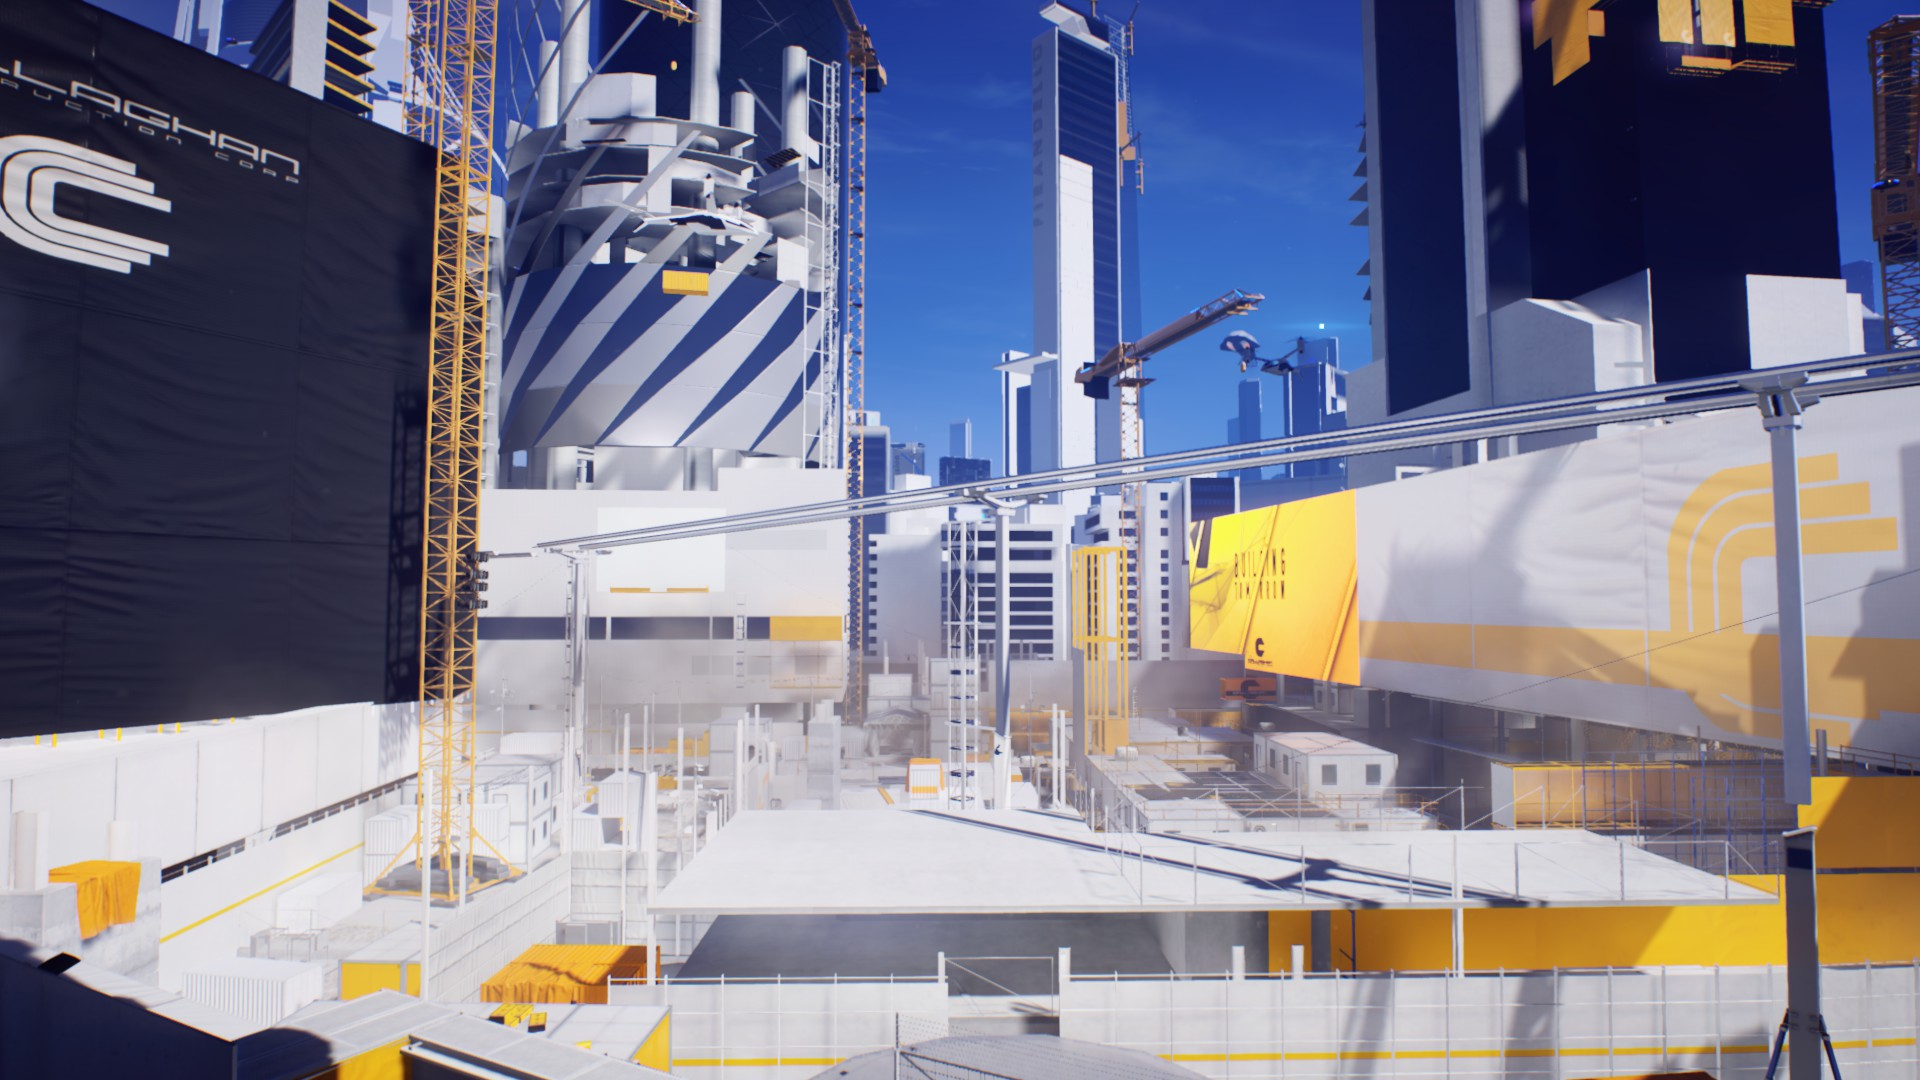 The construction site, the open world's most enjoyable area